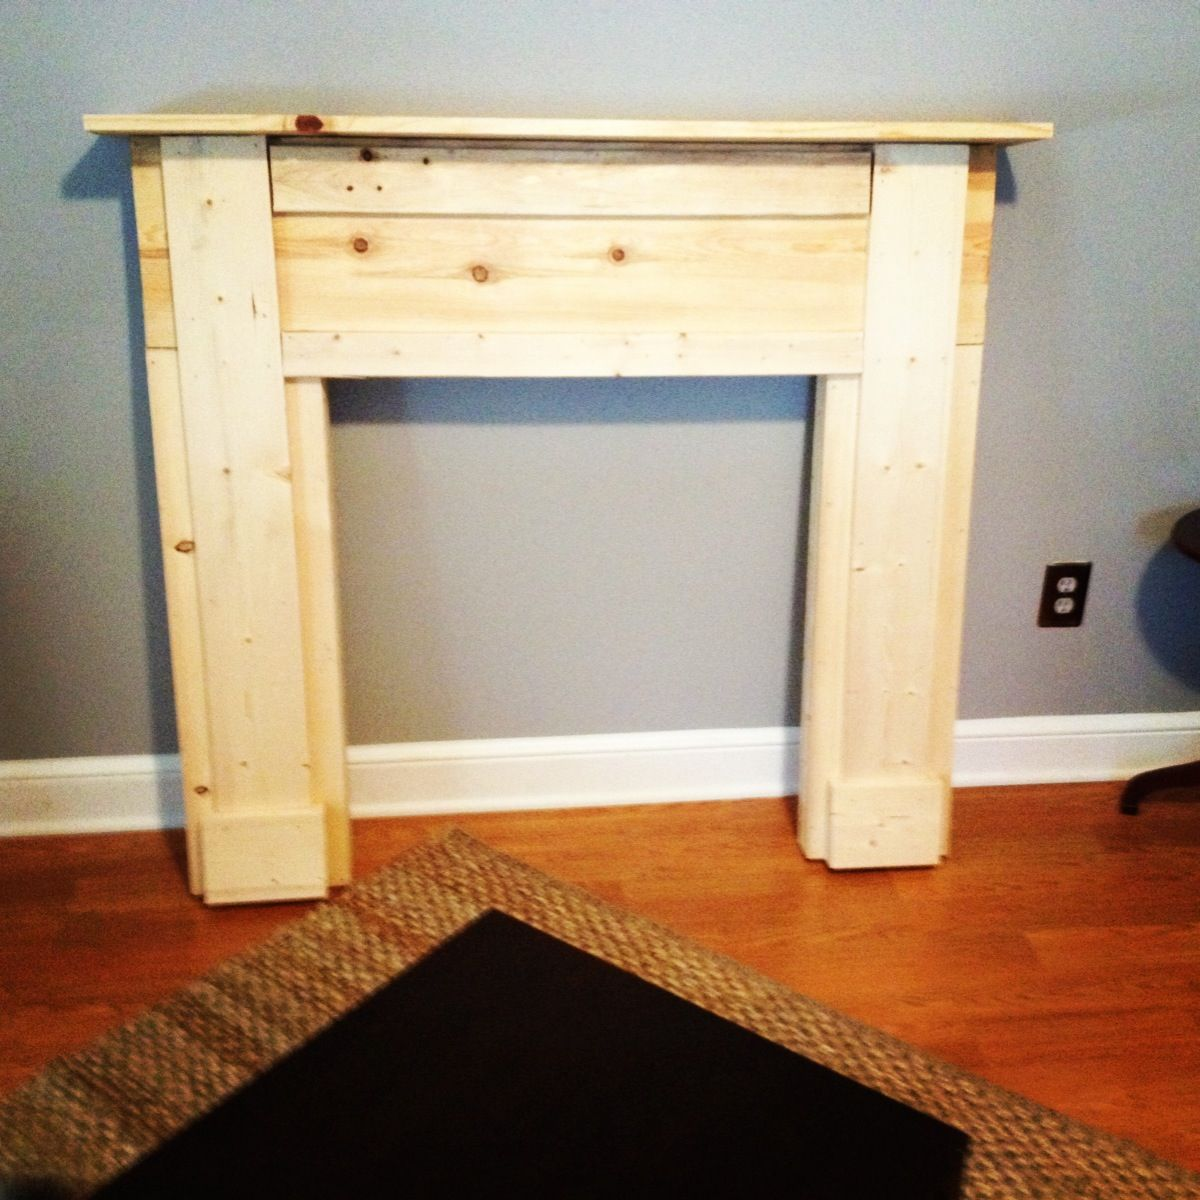 Building A Faux Fireplace Mantel Still Needs Paint Diy Pinterest Faux Fireplace Mantels